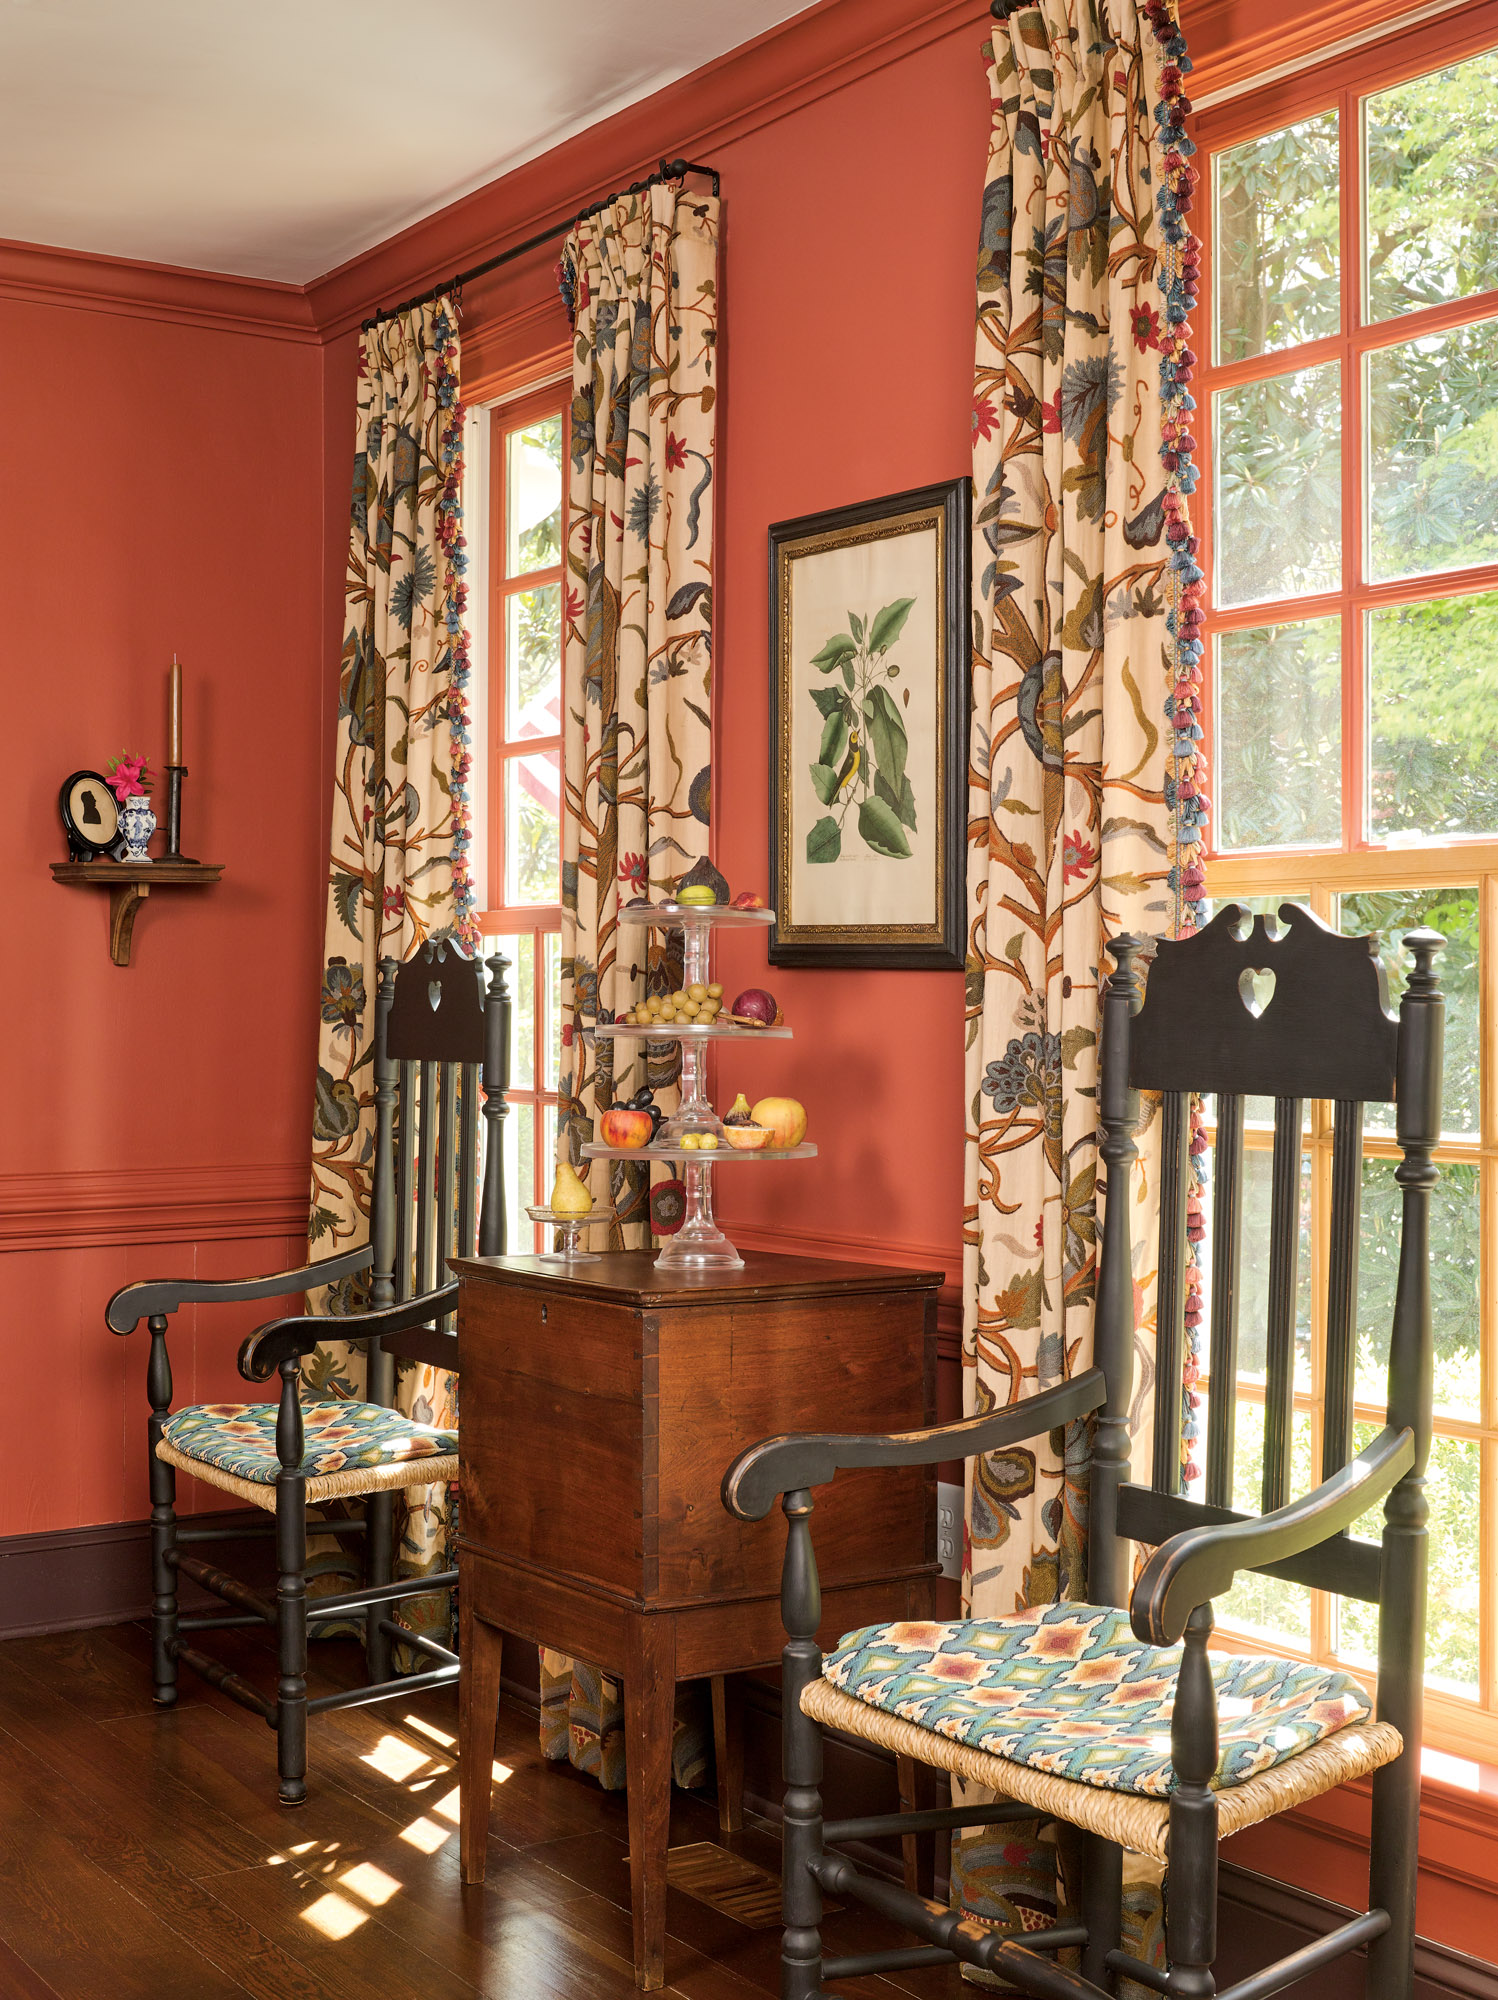 Royal Barry Wills Colonial Revival dining room